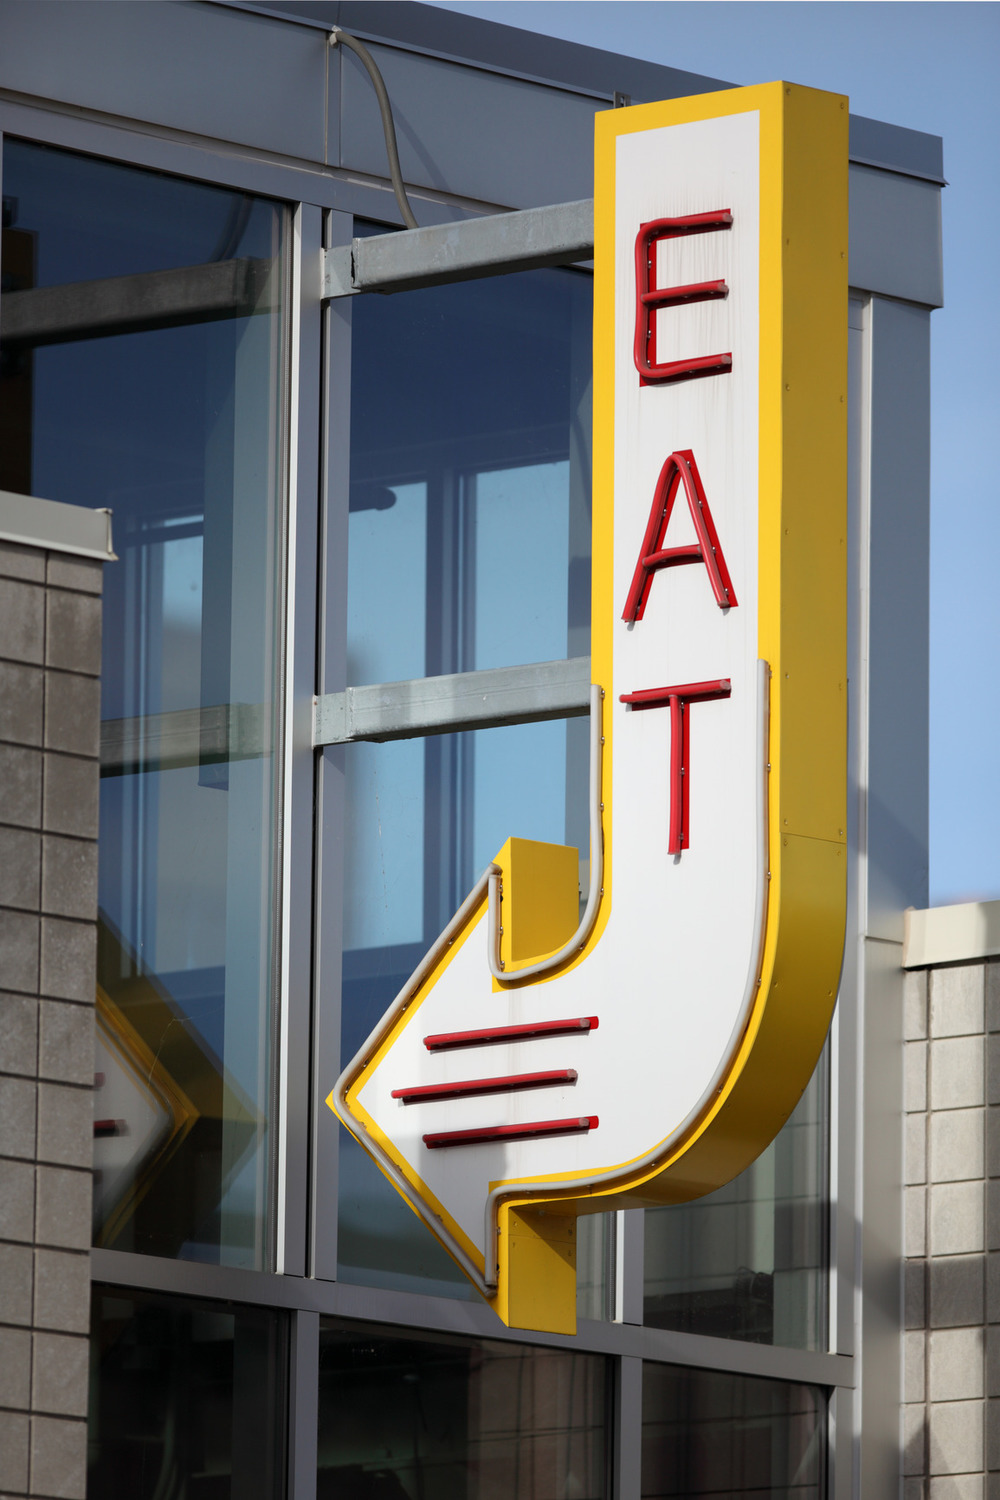 photodune-6460174-eat-here-arrow-sign-m-2.jpg